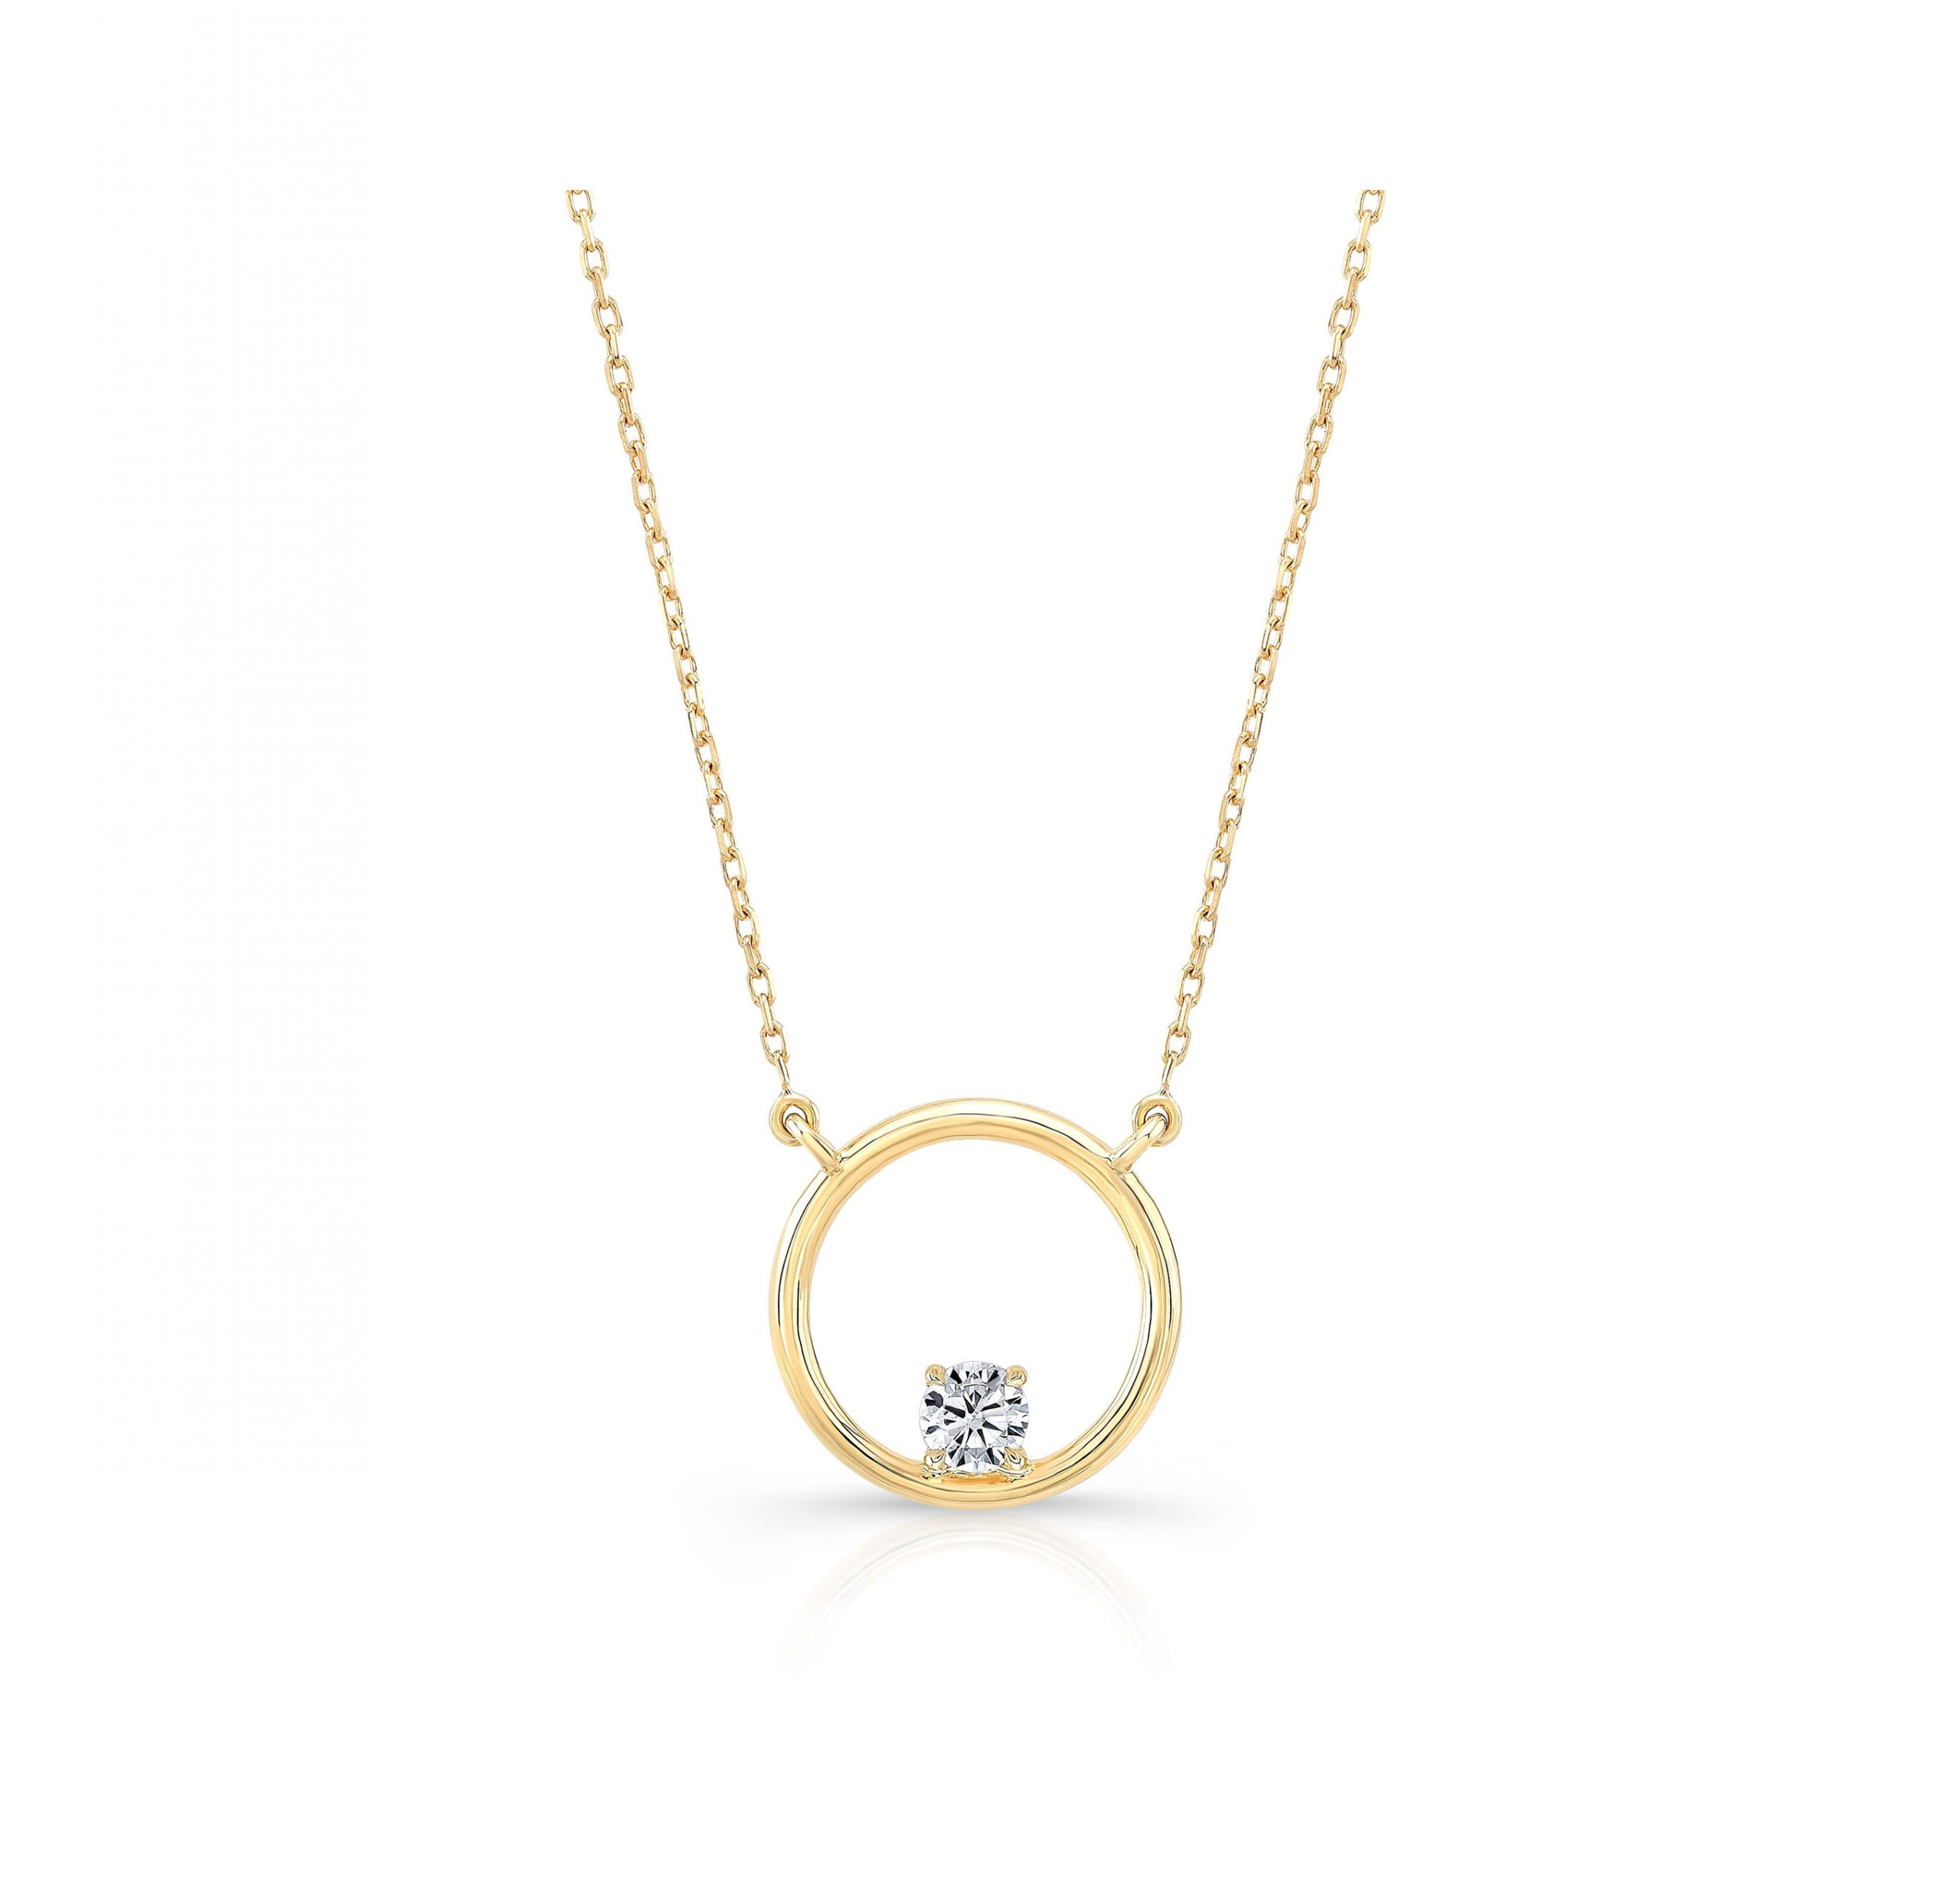 Colette Circle Diamond Necklace, round brilliant in 18k Yellow Gold Front View by Oui by Jean Dousset